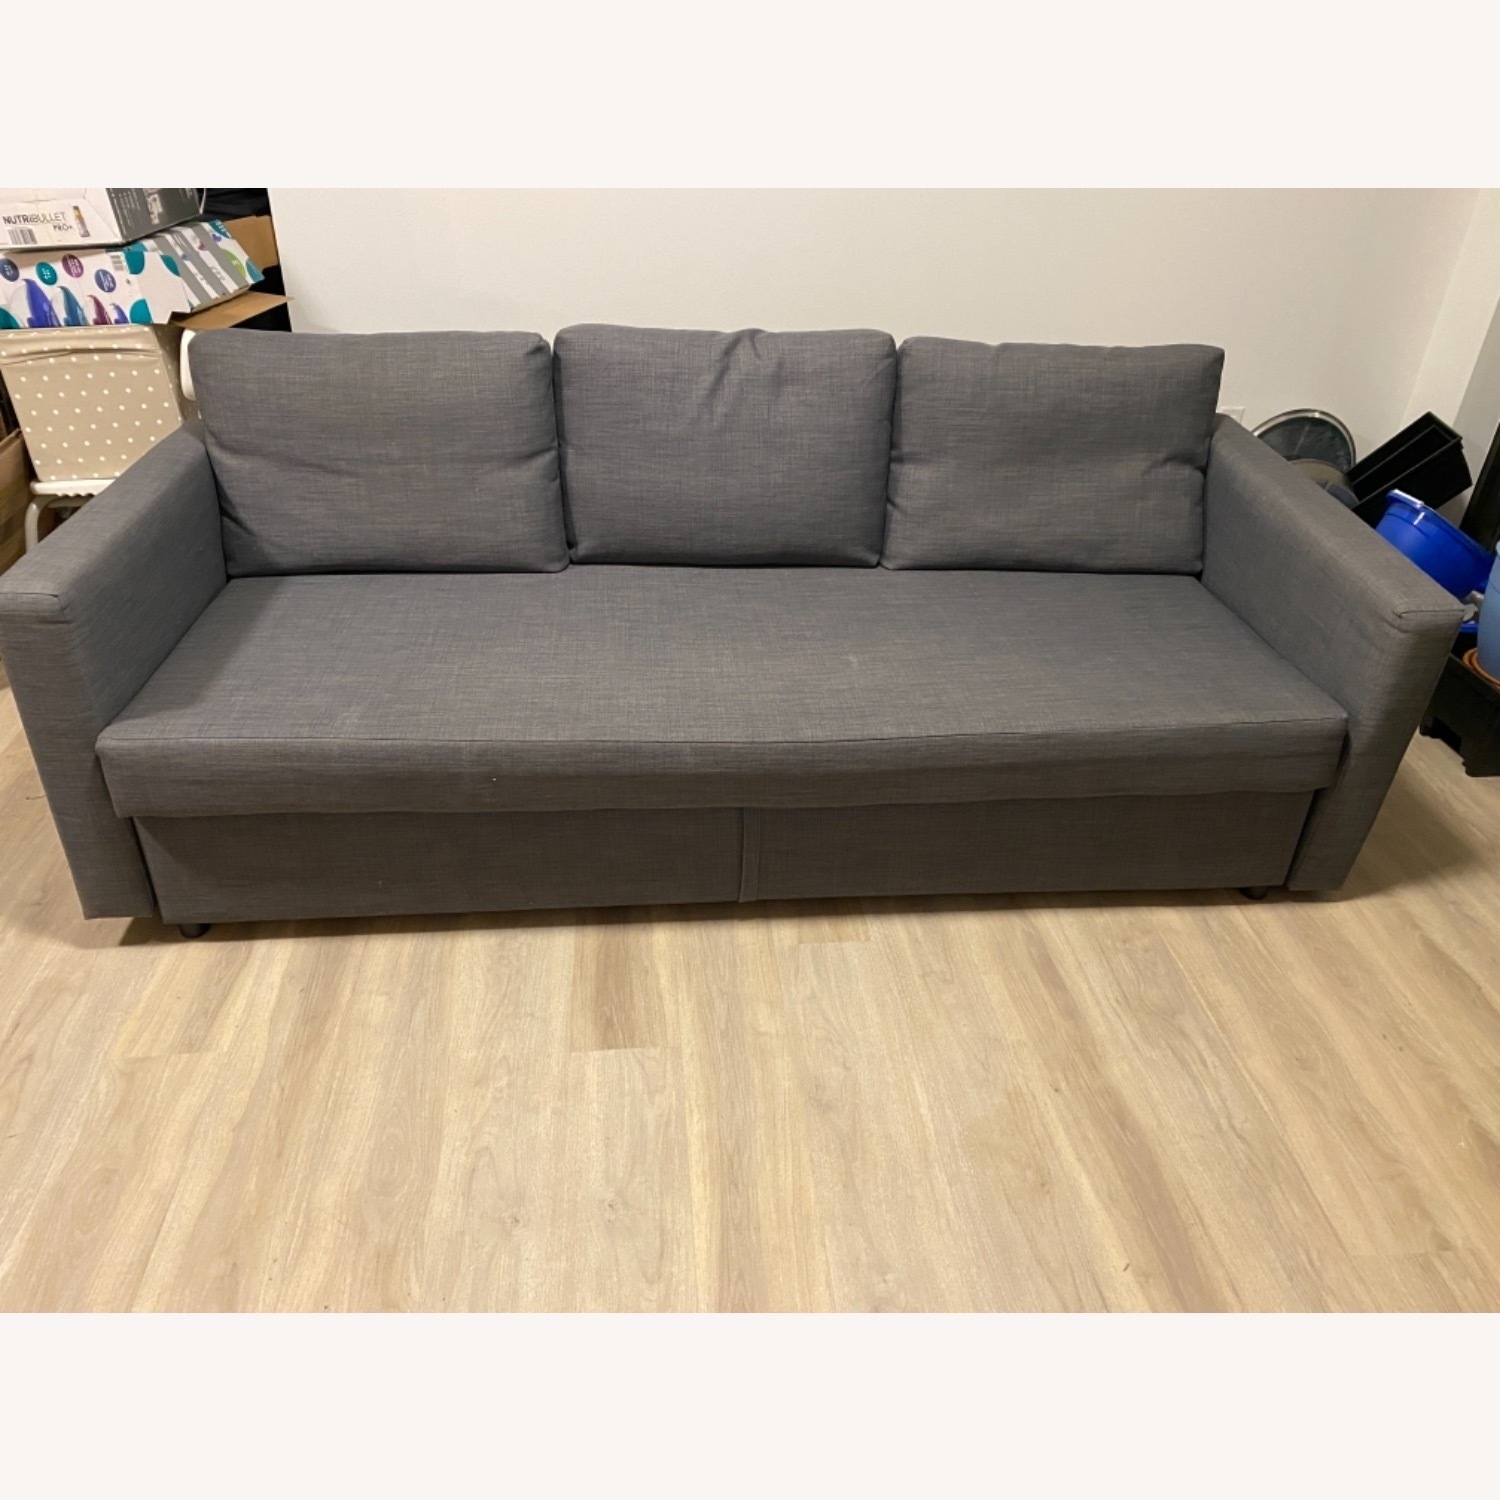 IKEA Dark Grey Sofa Bed - image-1